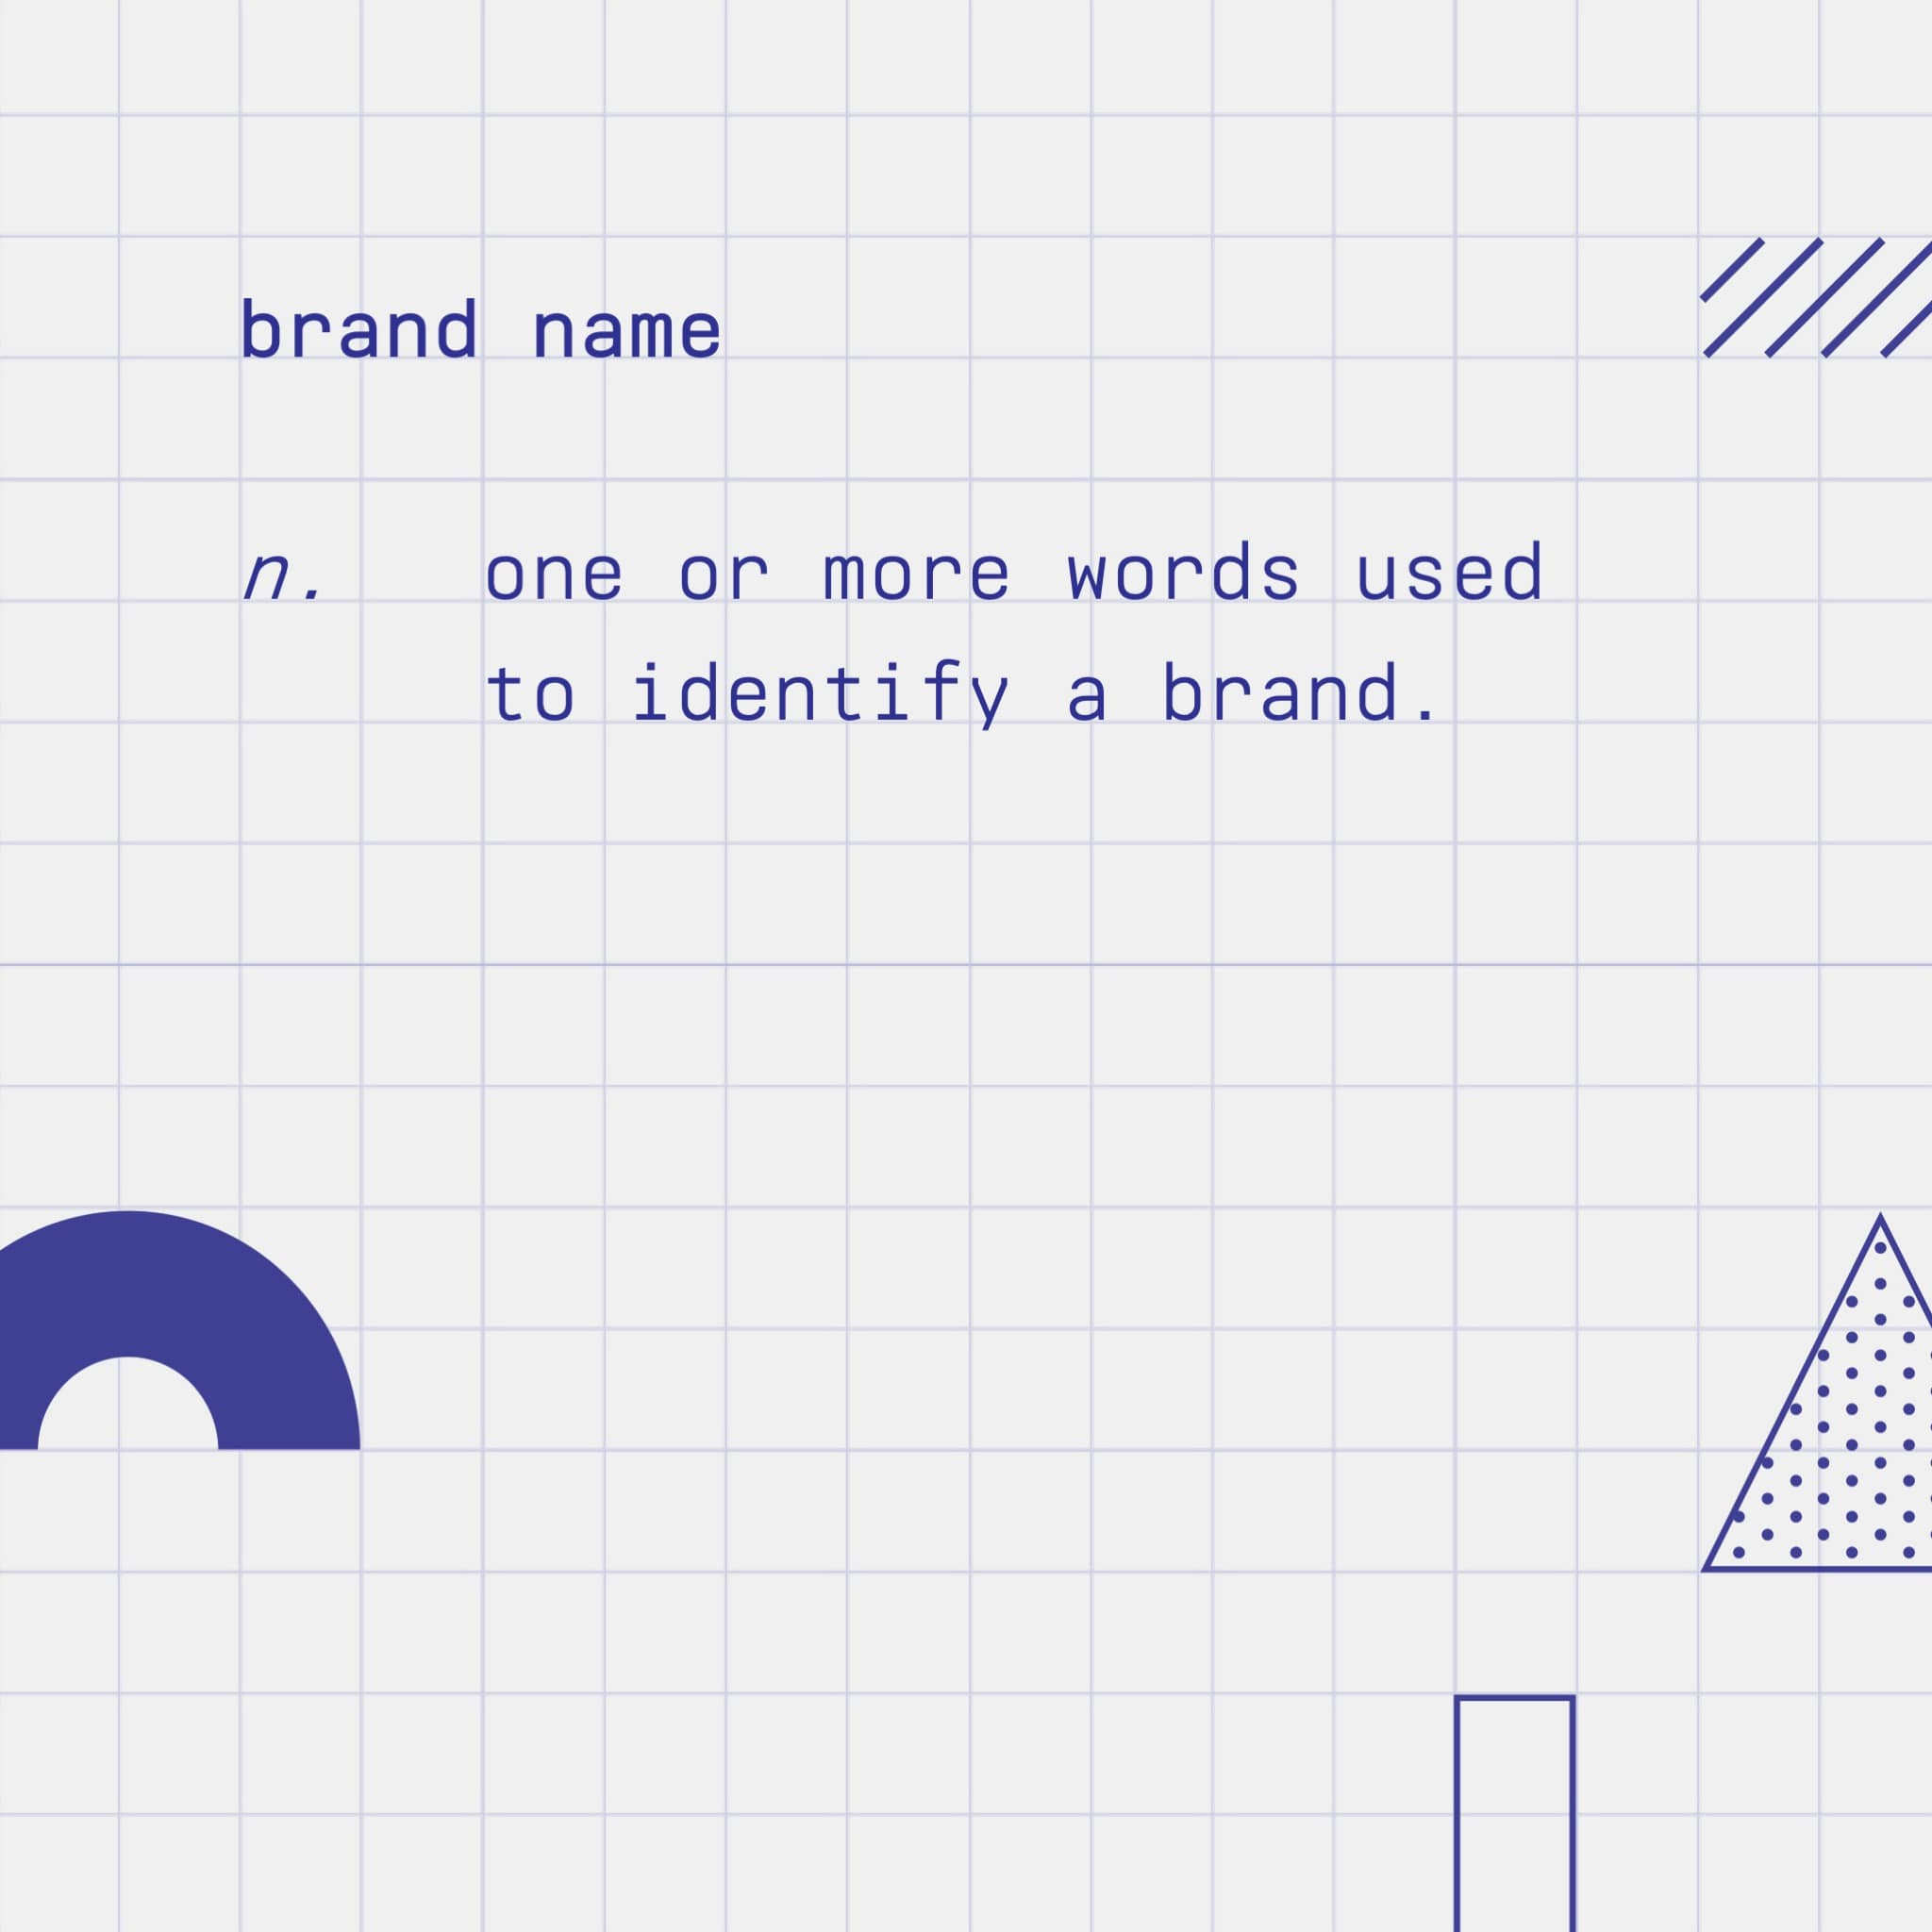 Brand name definition